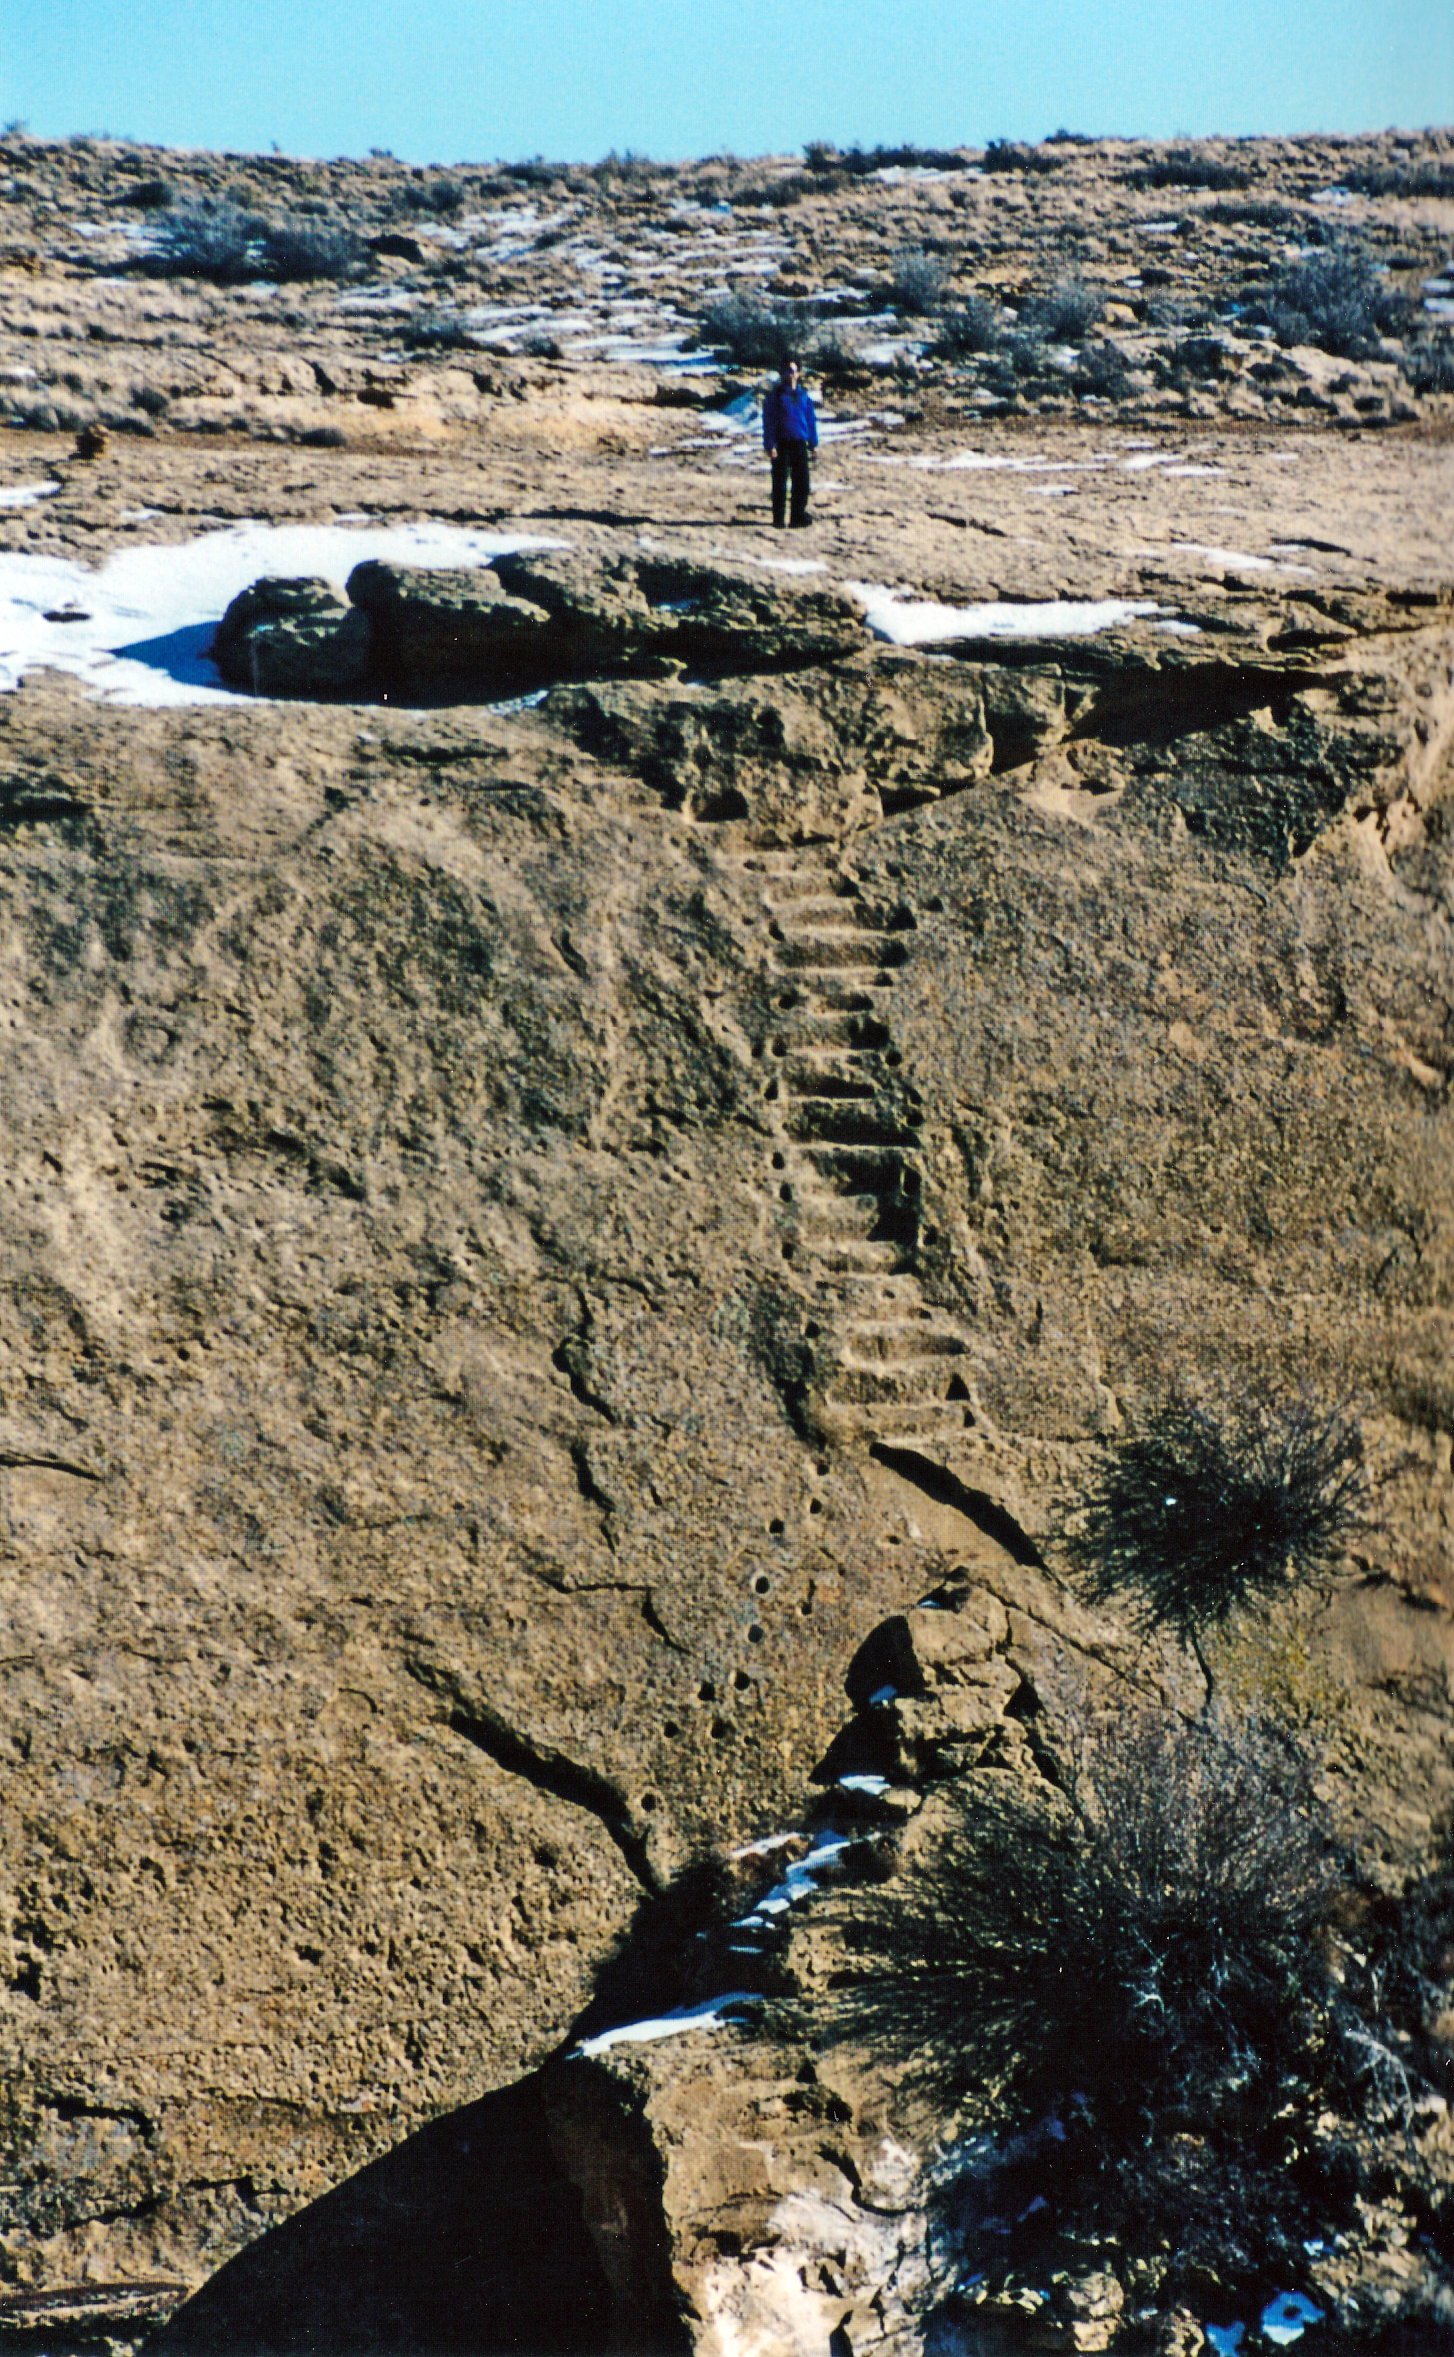 The prehistoric stairway and handholds were carved into this cliff by the Chacoan people who made this area the center of a vast trading zone radiating hundreds of miles in all directions from what is now Chaco Culture National Historical Park. Photo by Crista Worthy.